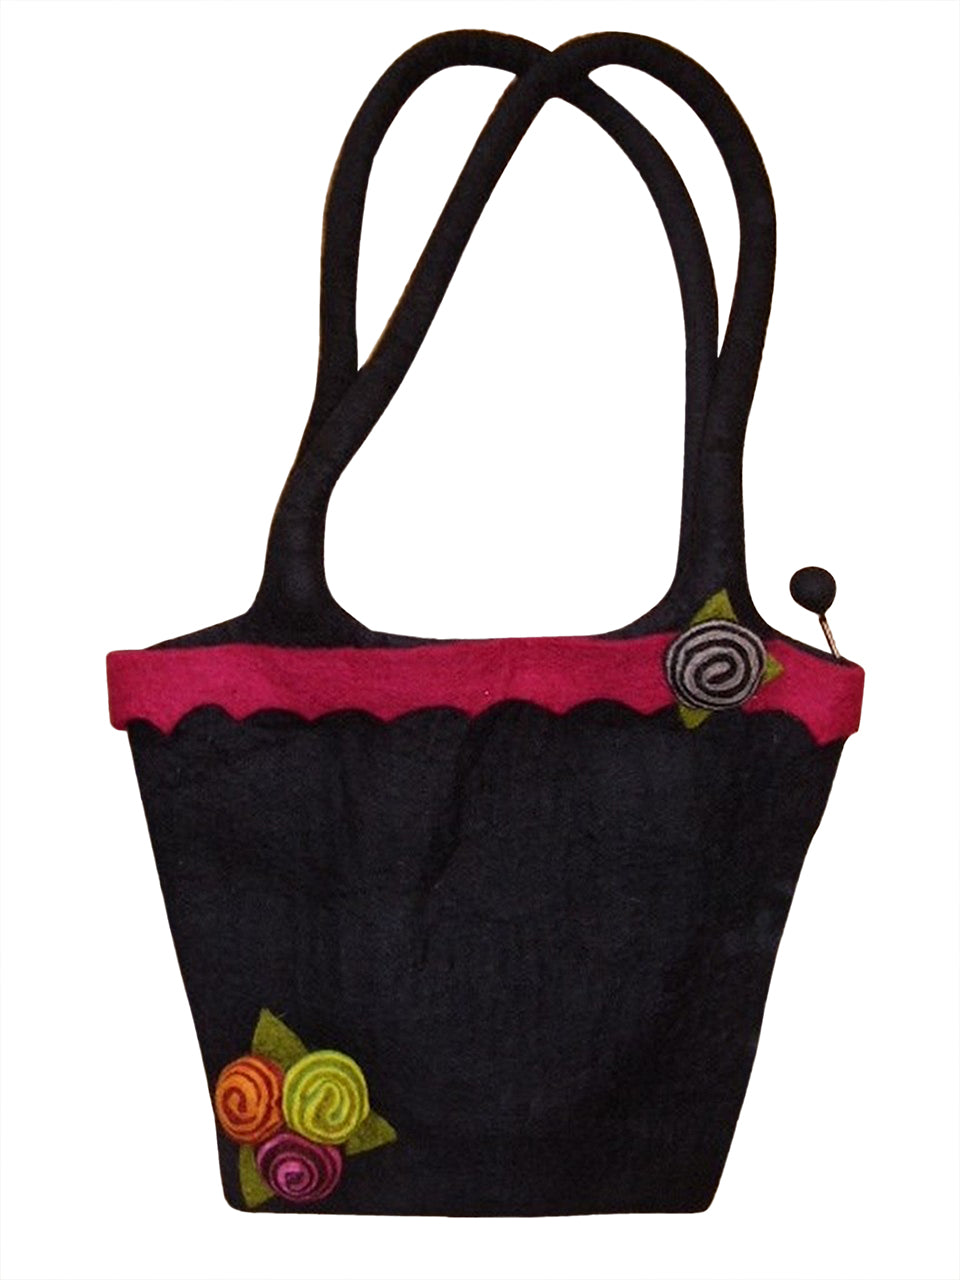 "Handcrafted Felt Handbag 11"" x 11"" Zipper Enclosure Black"